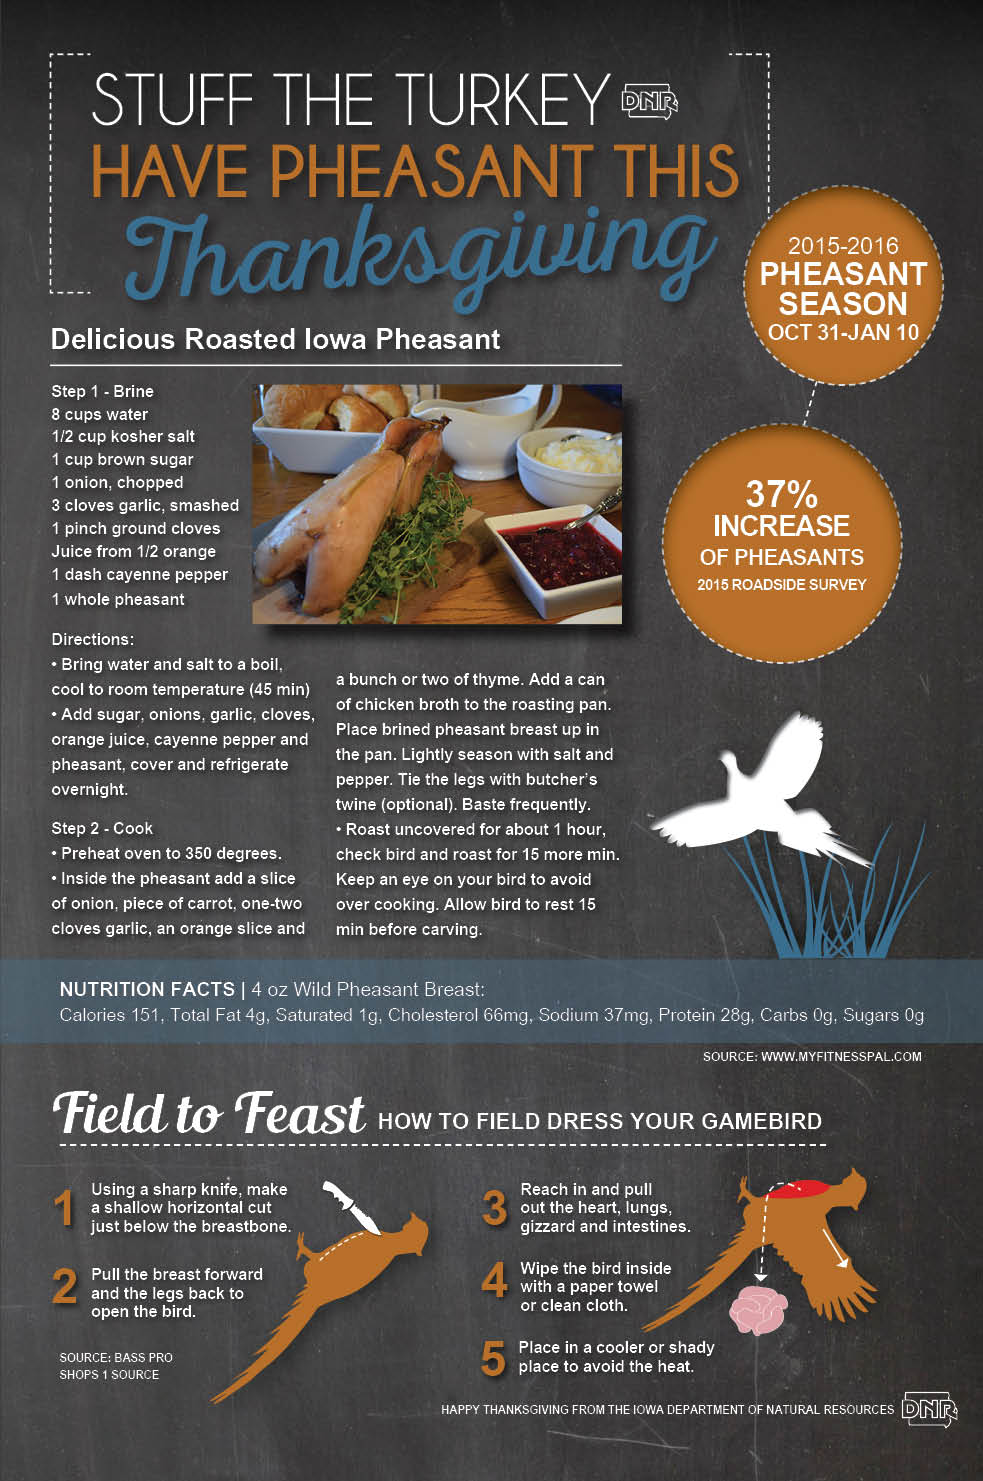 Stuff turkey this Thanksgiving and serve pheasant instead! Delicious Roasted Pheasant recipe | Iowa DNR